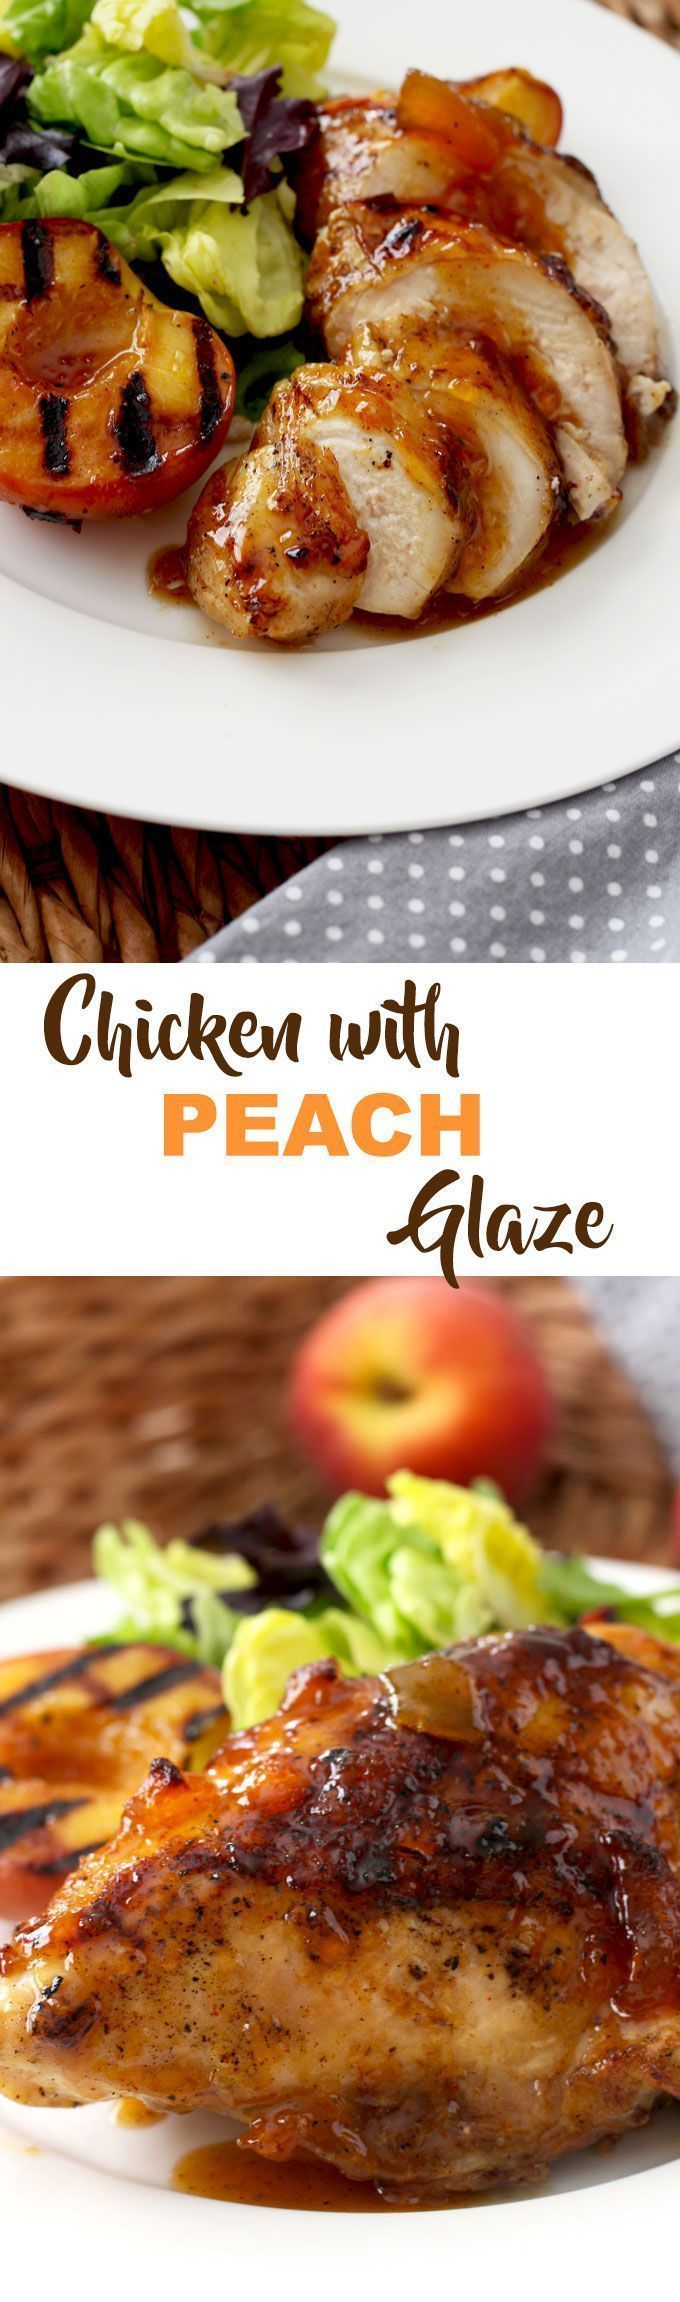 Sticky and sweet with a bit of spice this Chicken with Peach Glaze is easy to make and finger licking good!